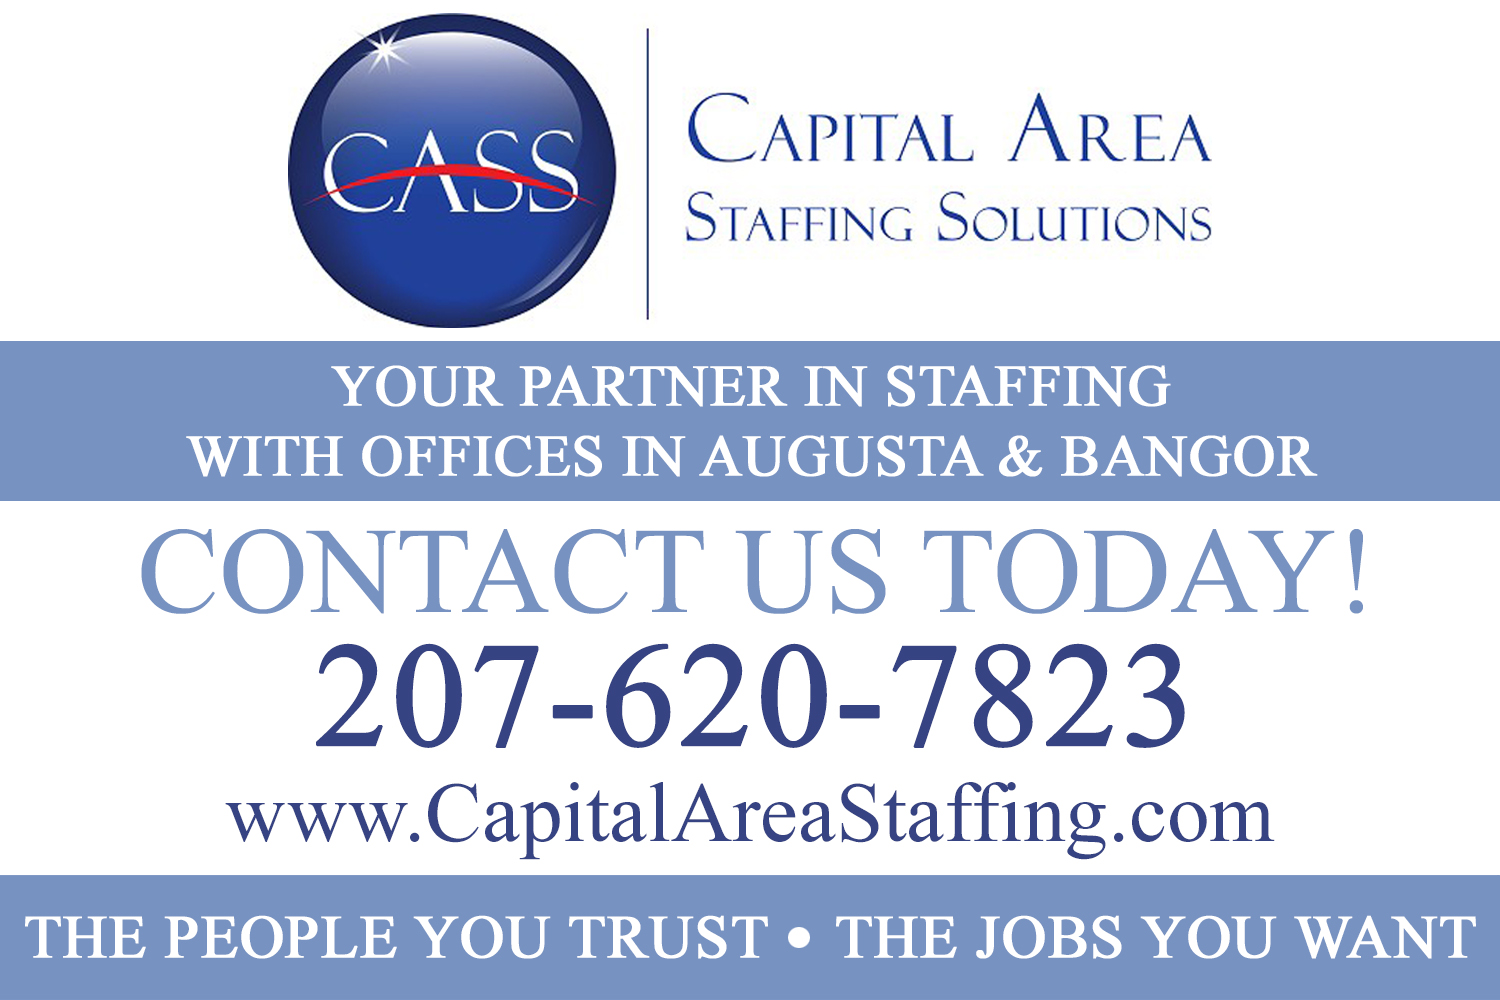 Capital Area Staffing Solutions